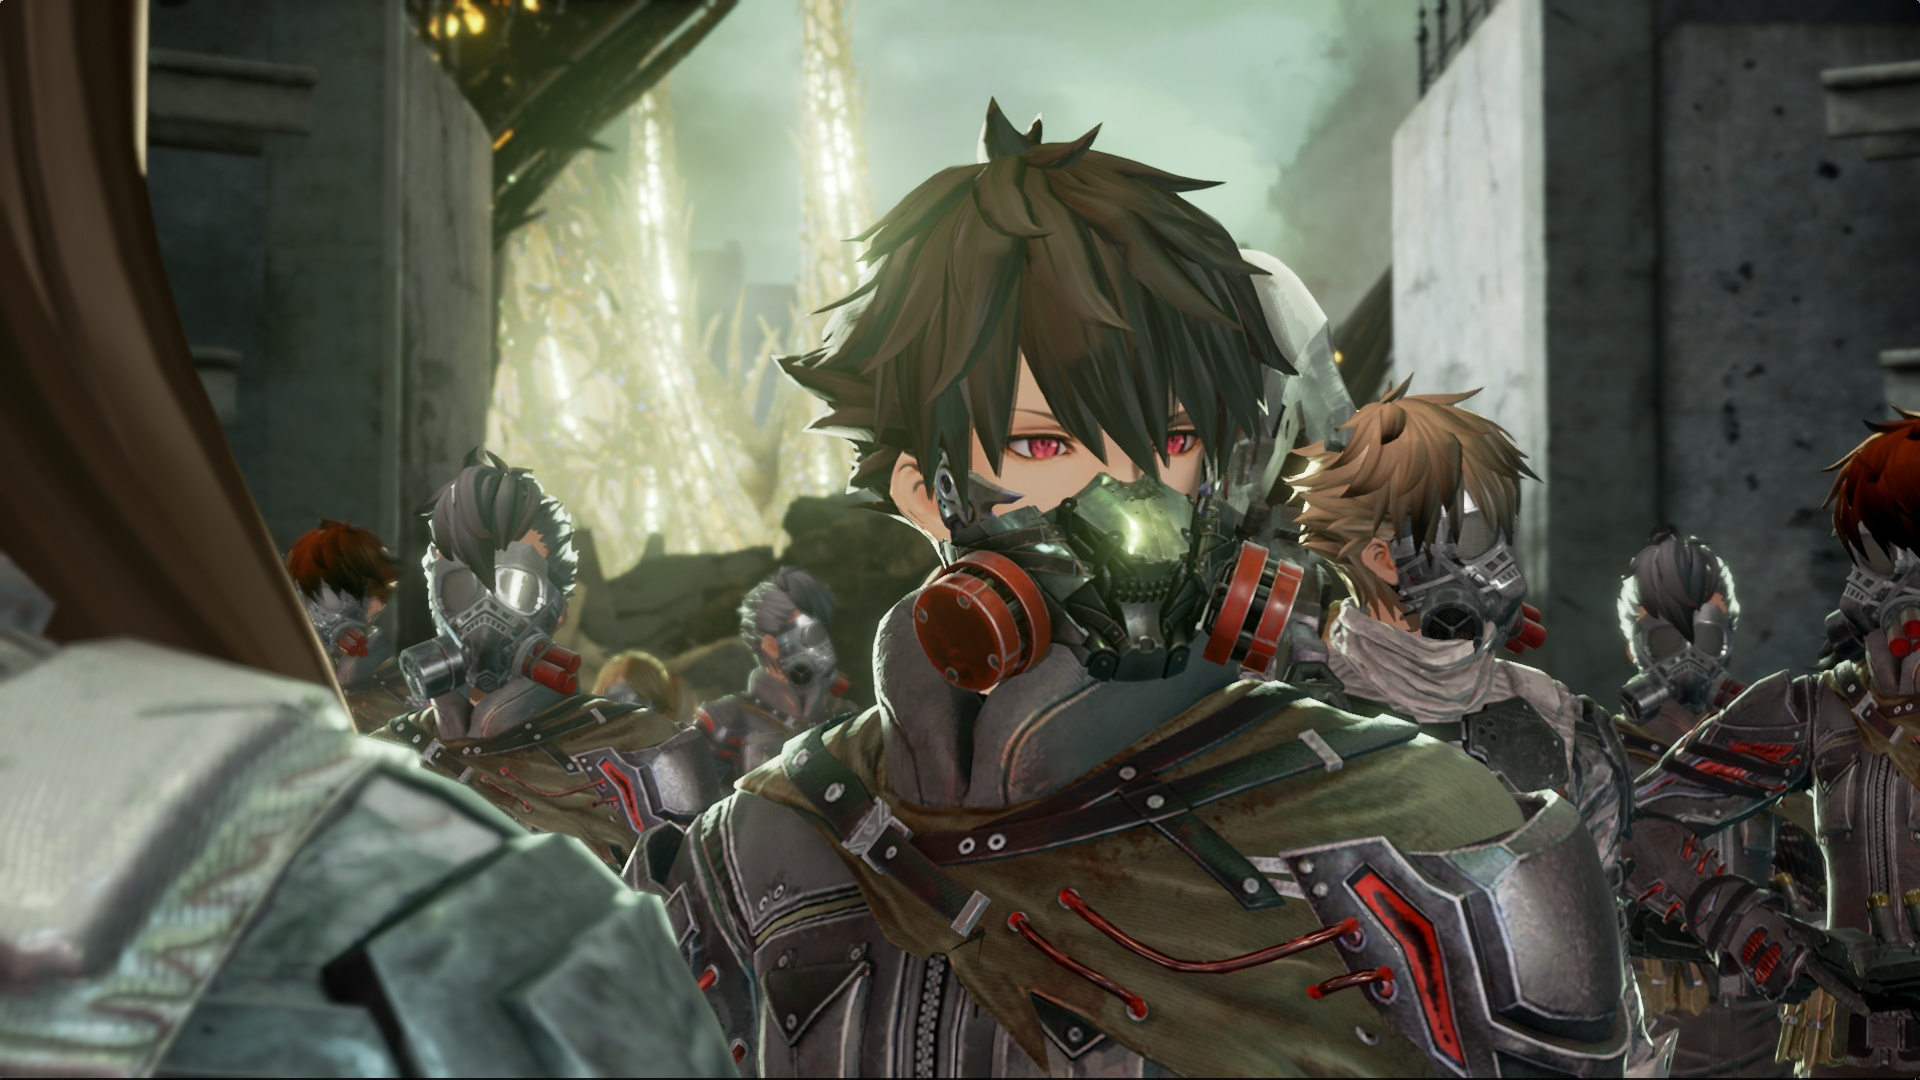 Code Vein Locks In Release Date With a New Trailer